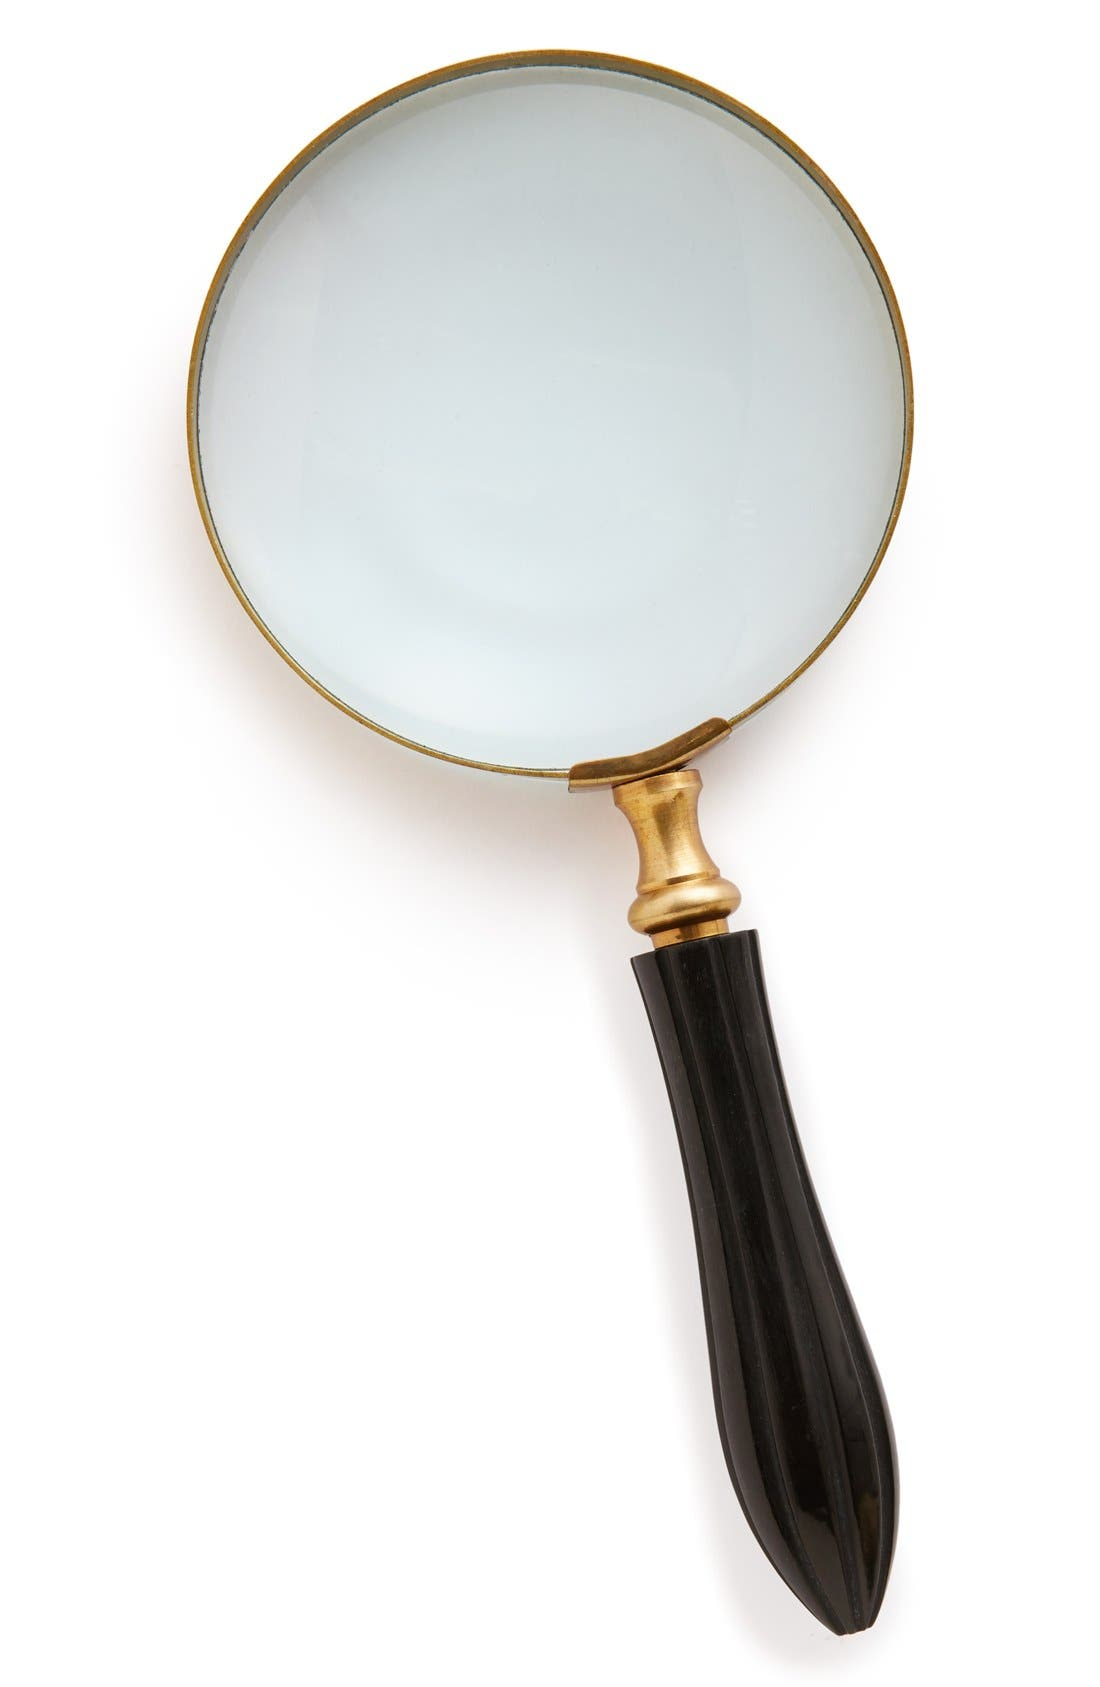 Alternate Image 1 Selected - Import Collection Carved Horn Magnifying Glass